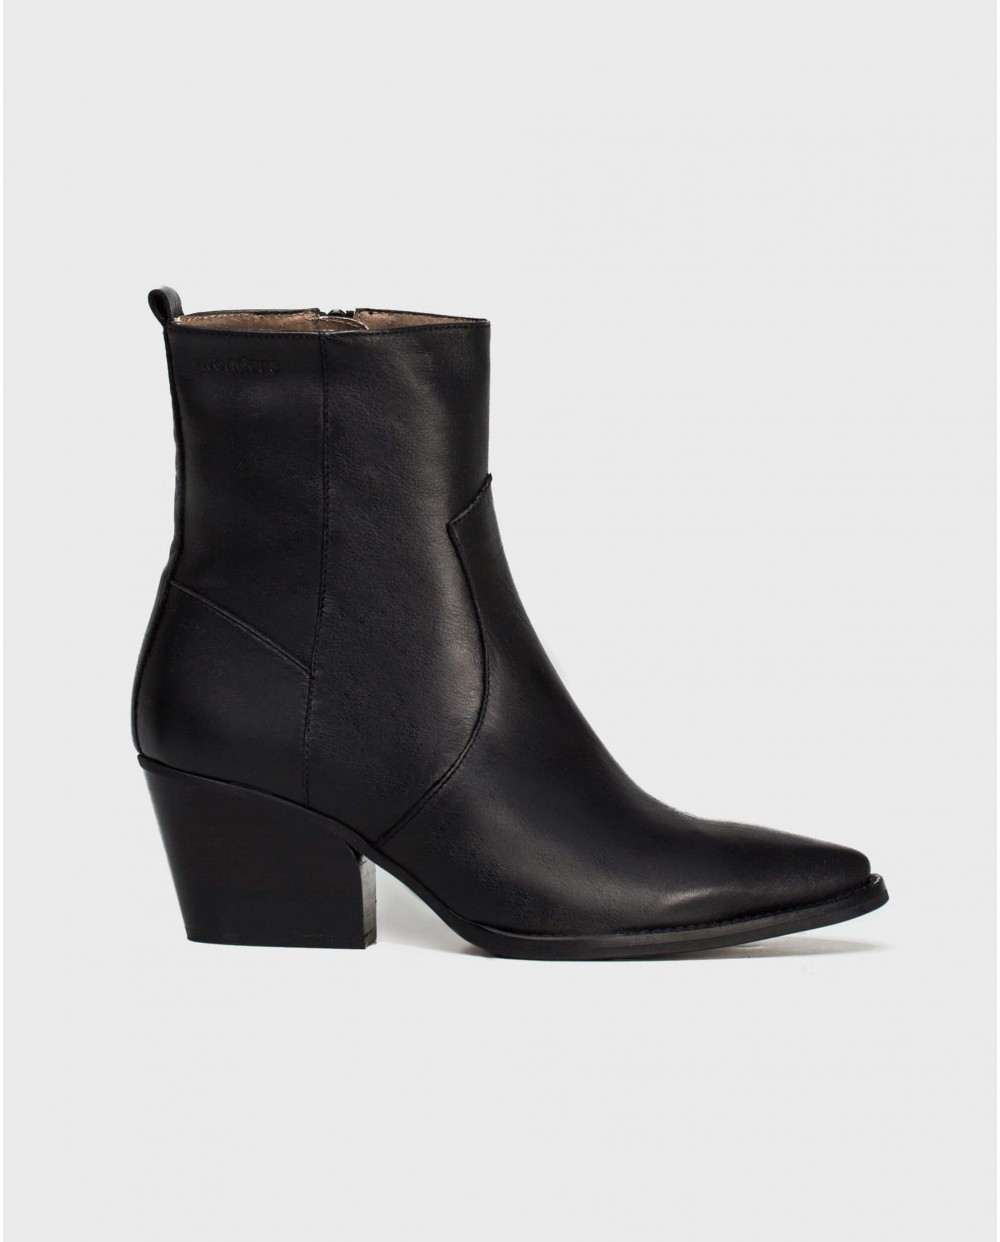 Wonders-Ankle Boots-Leather cowboy style ankle boot